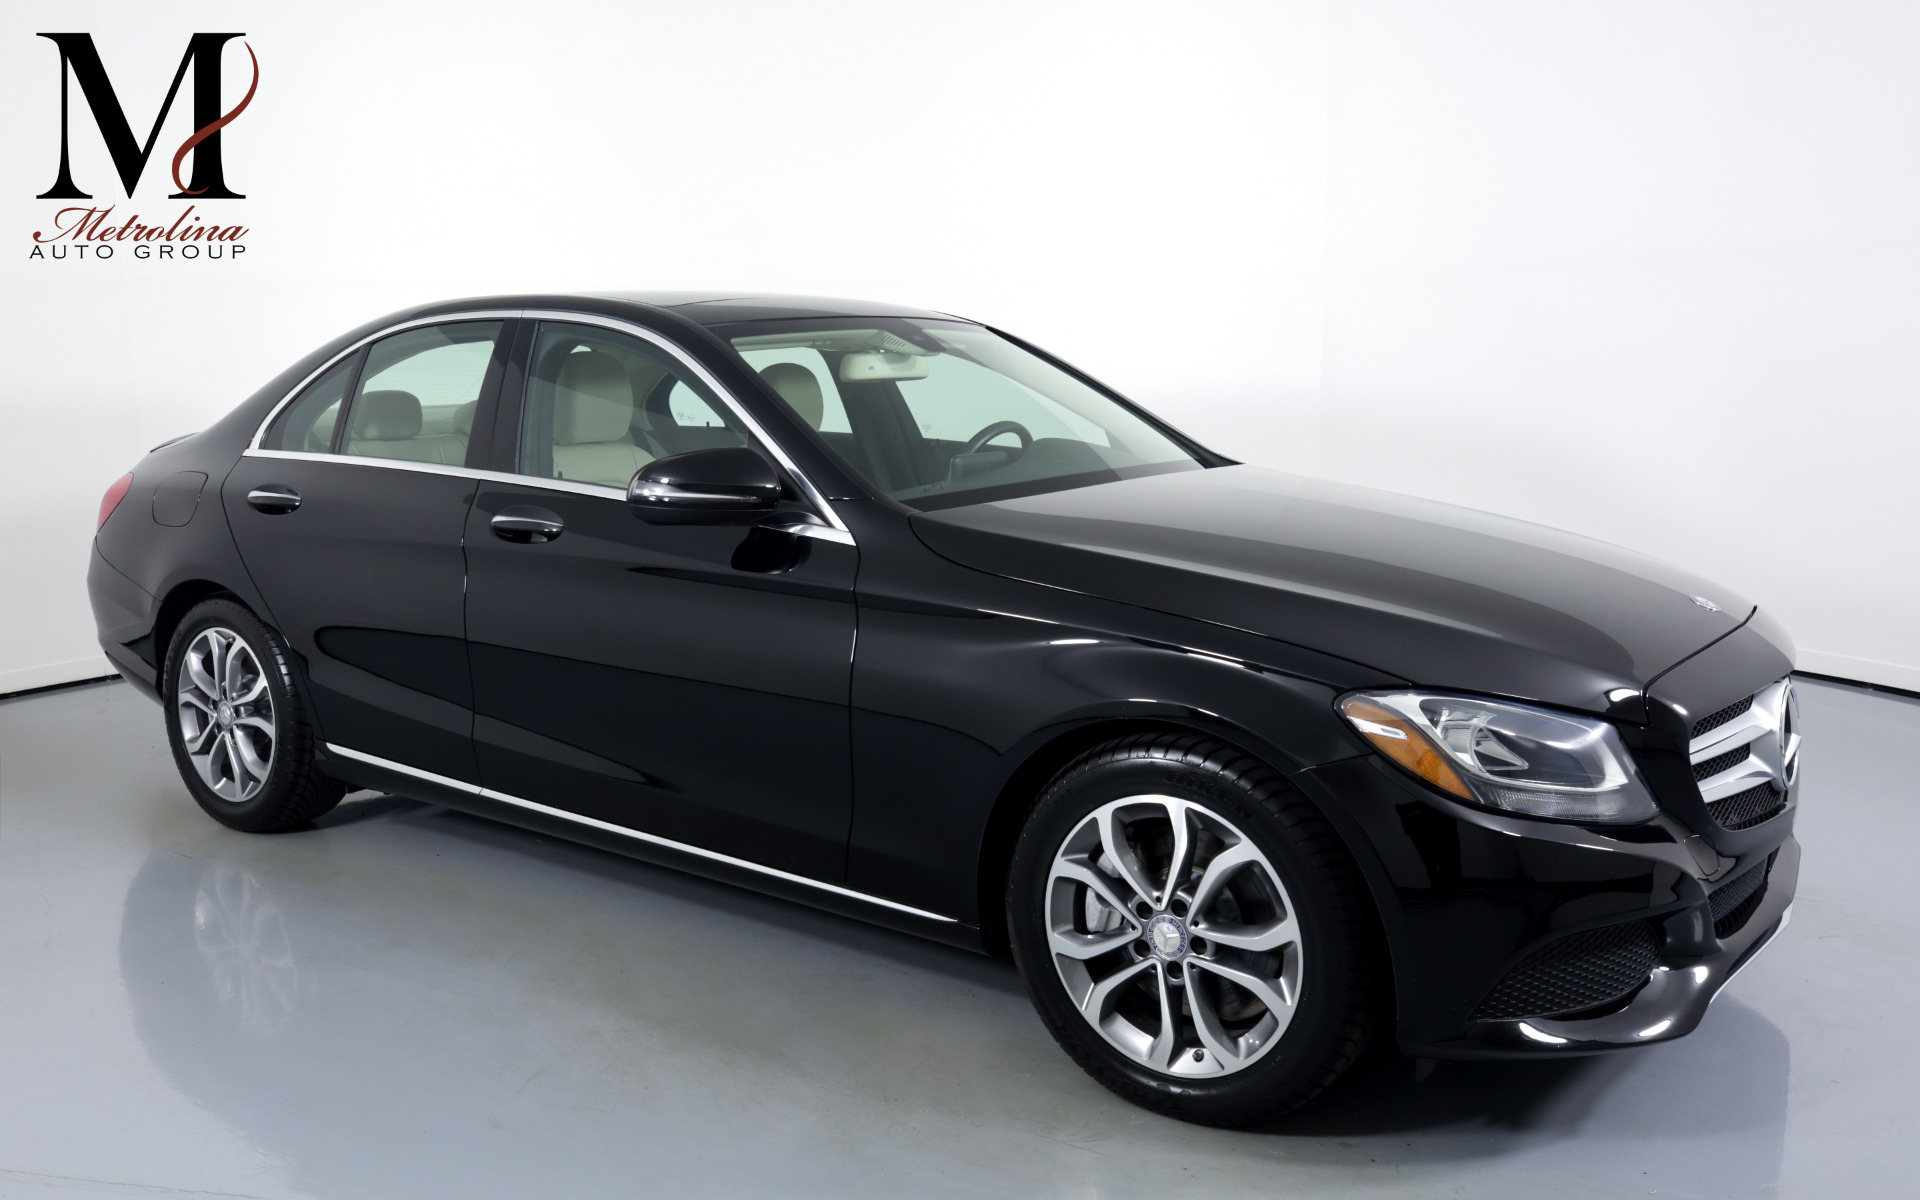 Used 2016 Mercedes-Benz C-Class C 300 for sale $23,456 at Metrolina Auto Group in Charlotte NC 28217 - 1